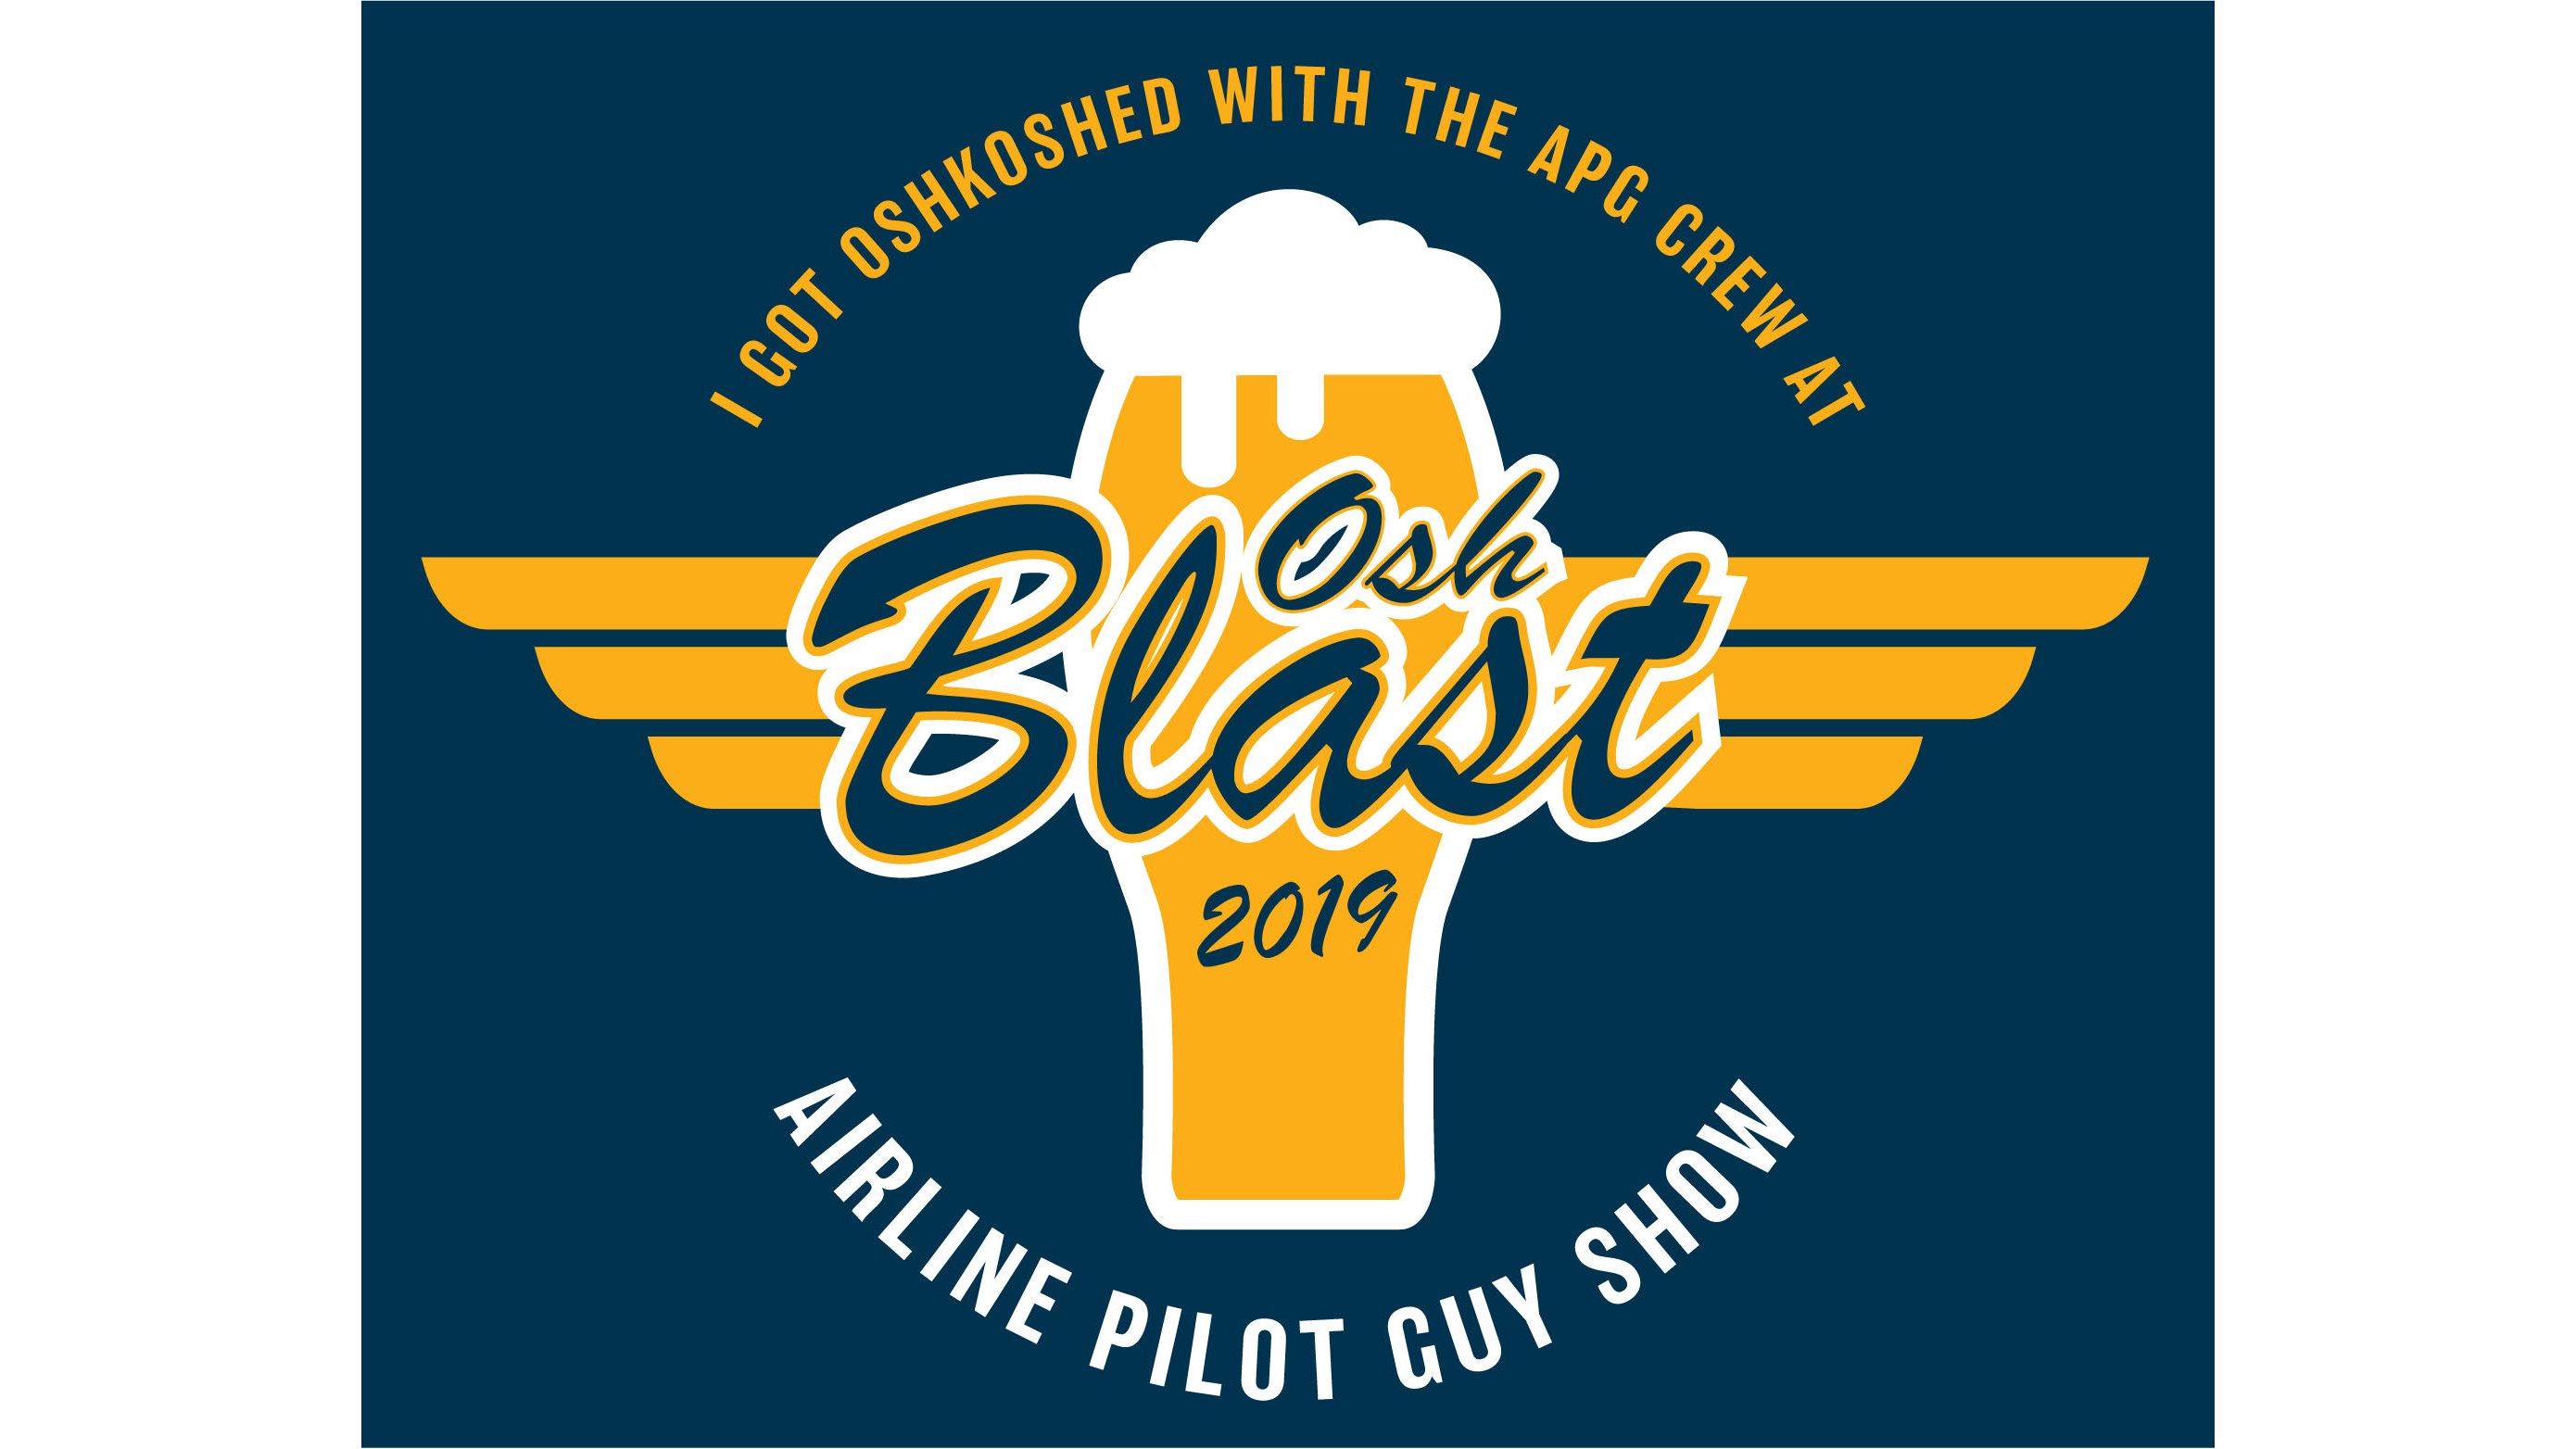 APG 378 – The OSH Blast is Coming!